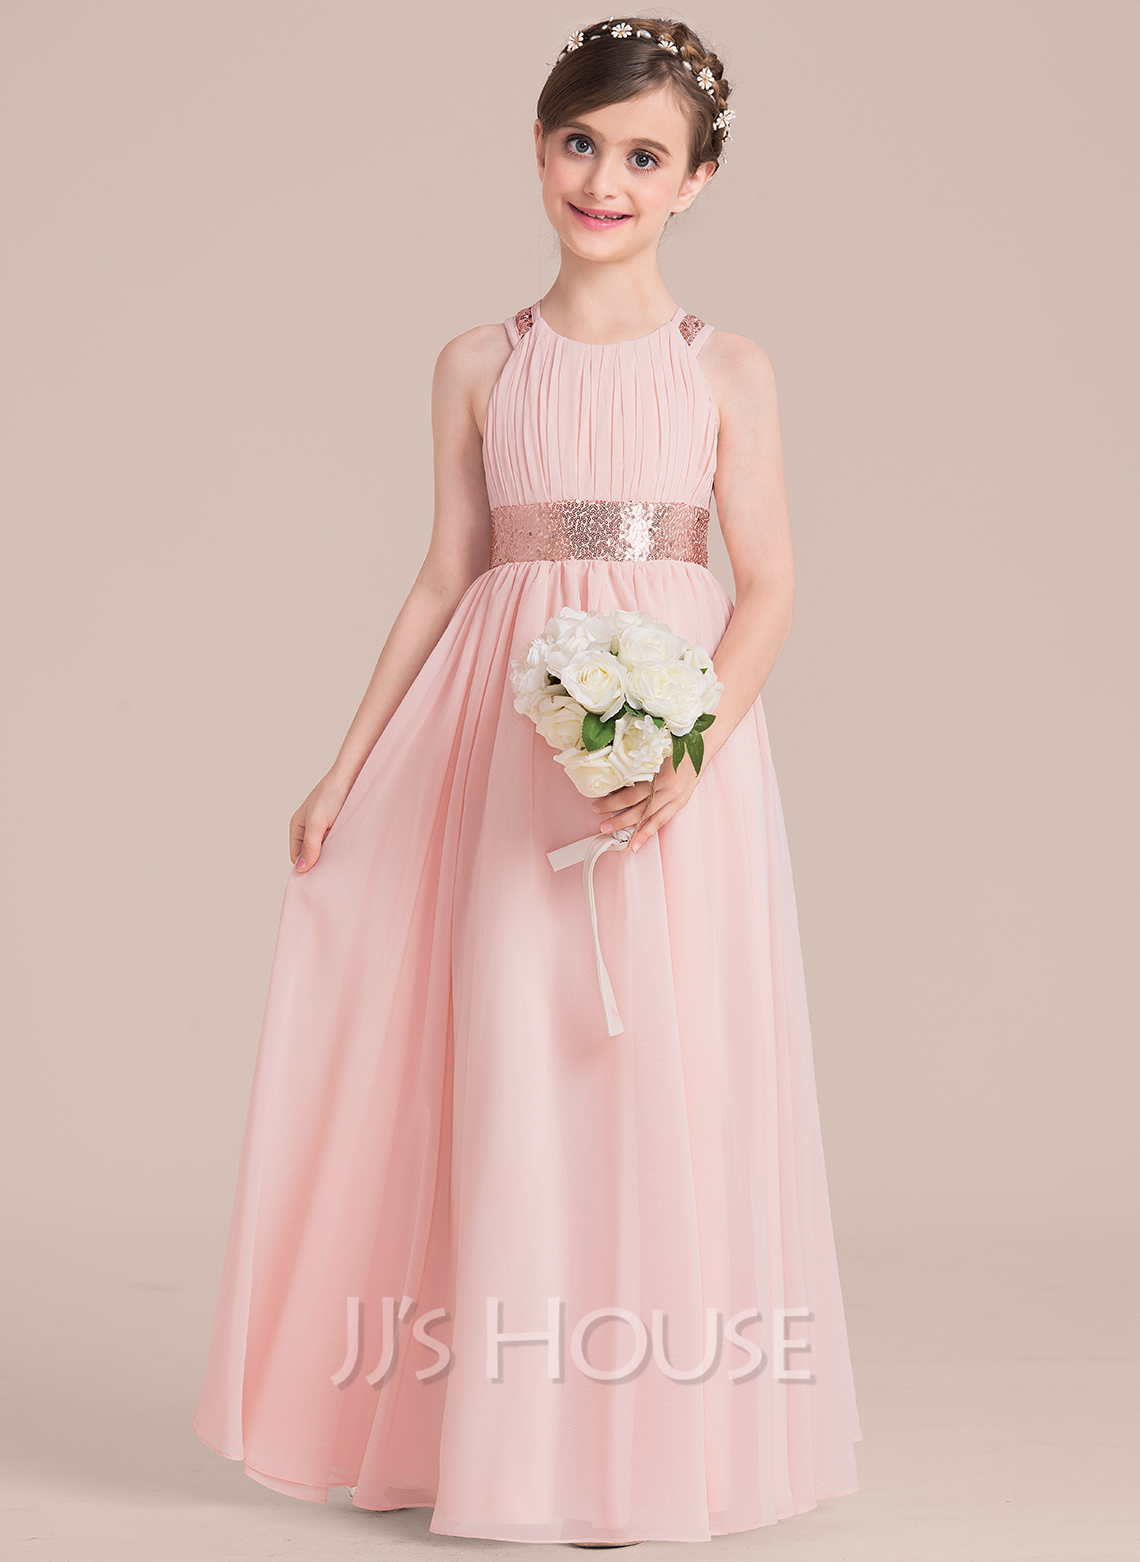 a6029ec8d33 A-Line Princess Floor-length Flower Girl Dress - Chiffon Sequined Sleeveless.  Loading zoom